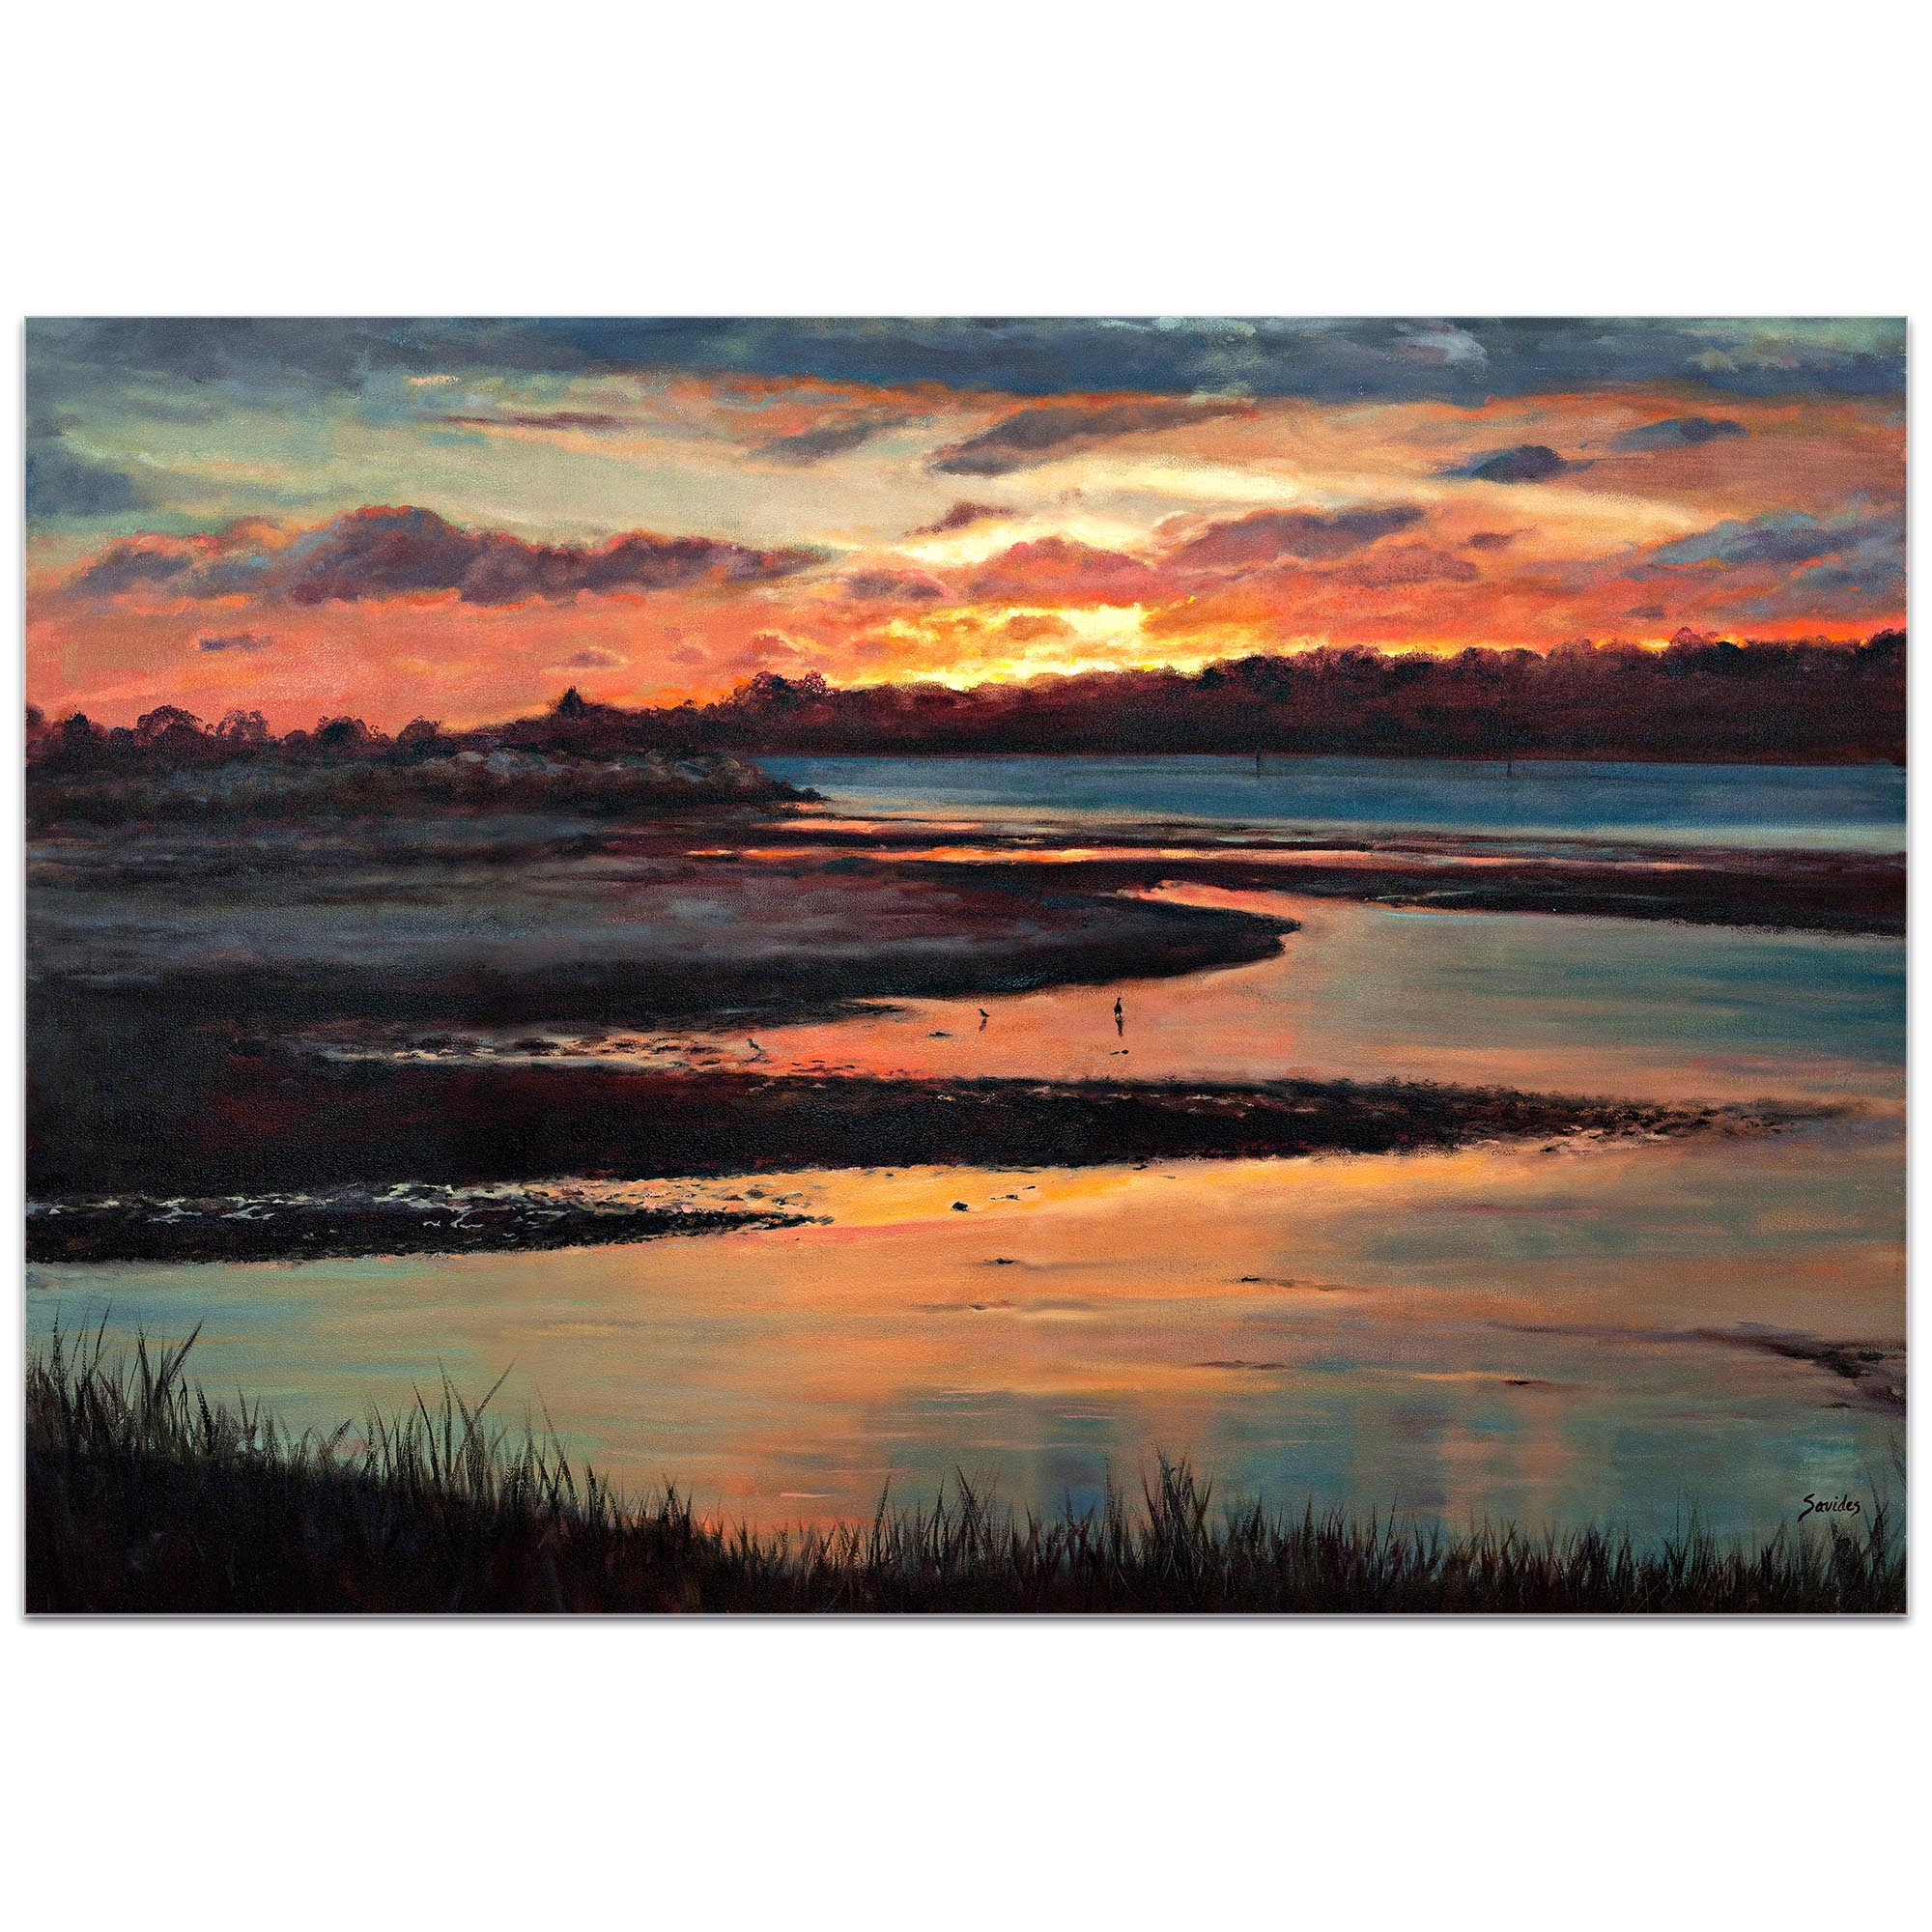 Traditional Wall Art 'Sunset' - River Landscape Decor on Metal or Plexiglass - Image 2